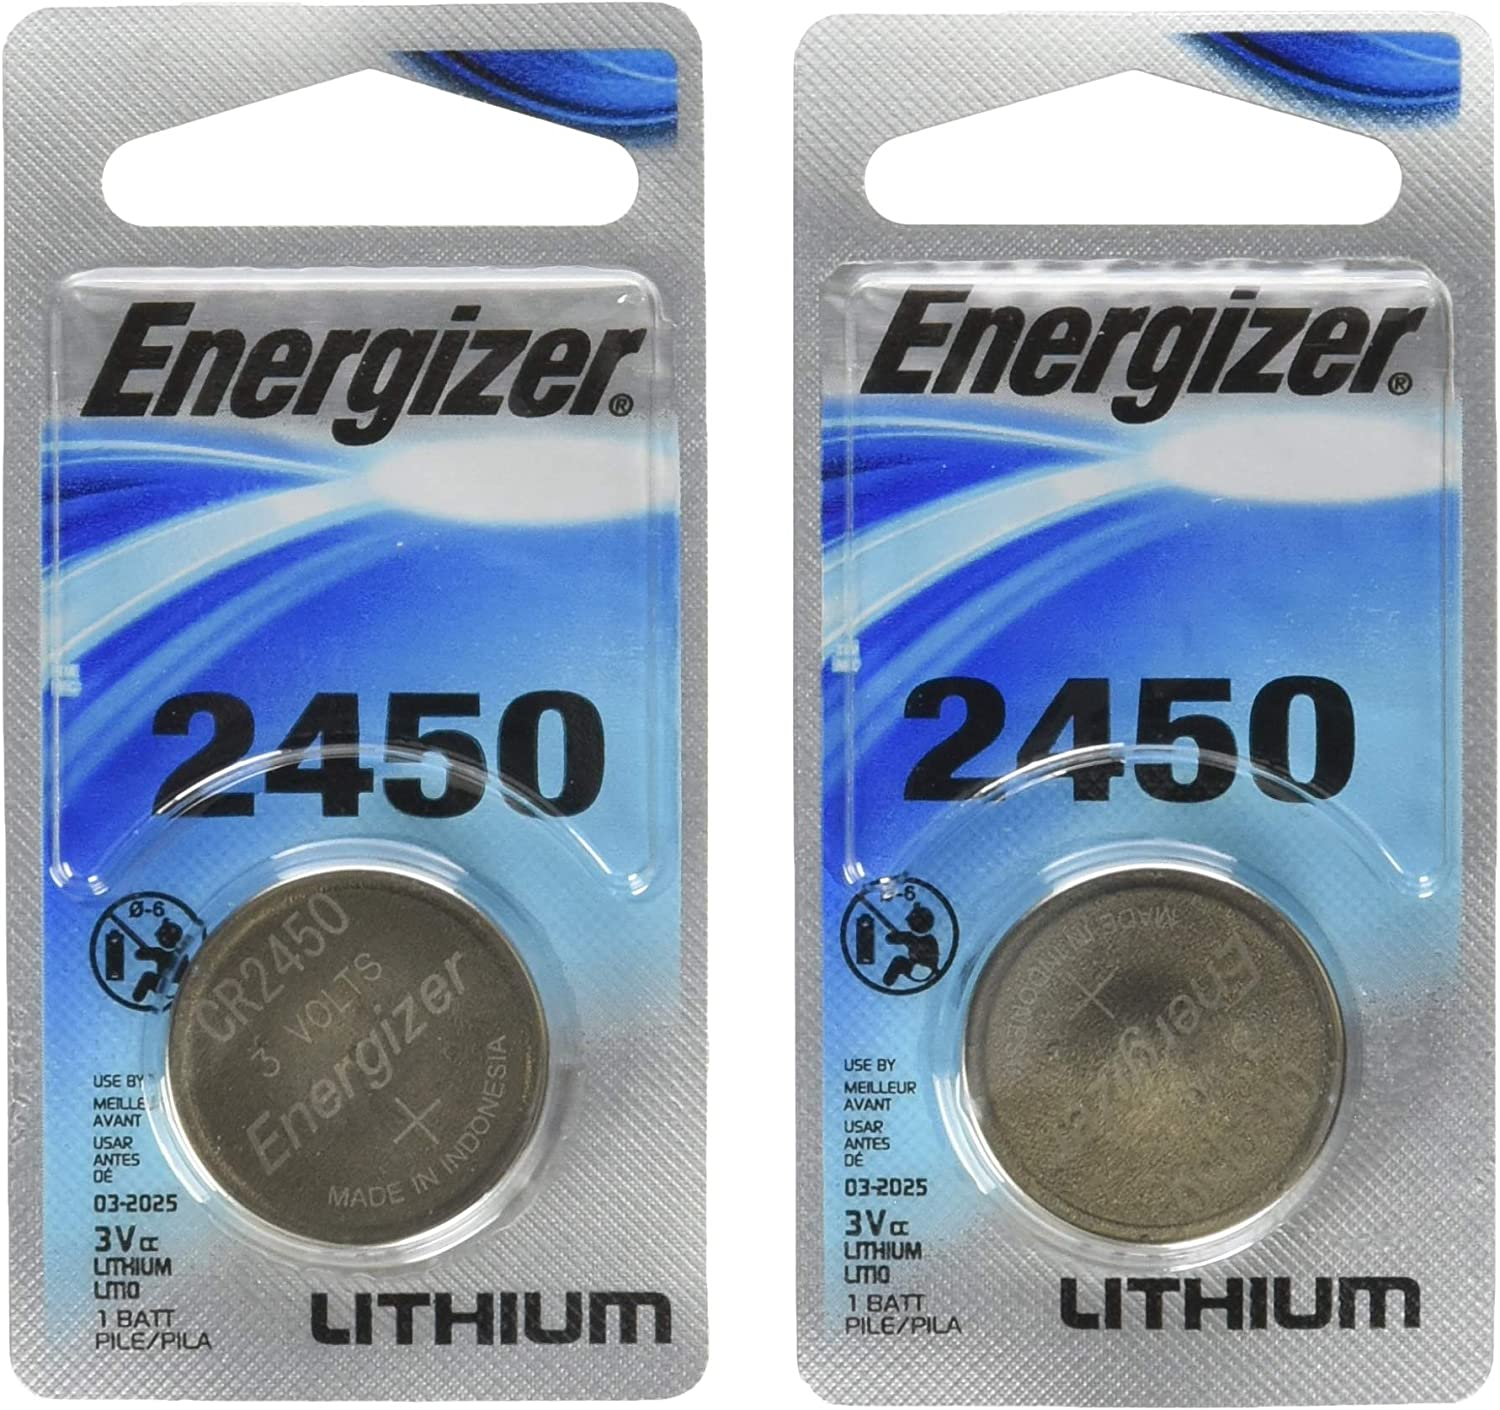 Energizer Lithium Coin Blister Pack Watch/Electronic Batteries (Pack of 2): Health & Personal Care